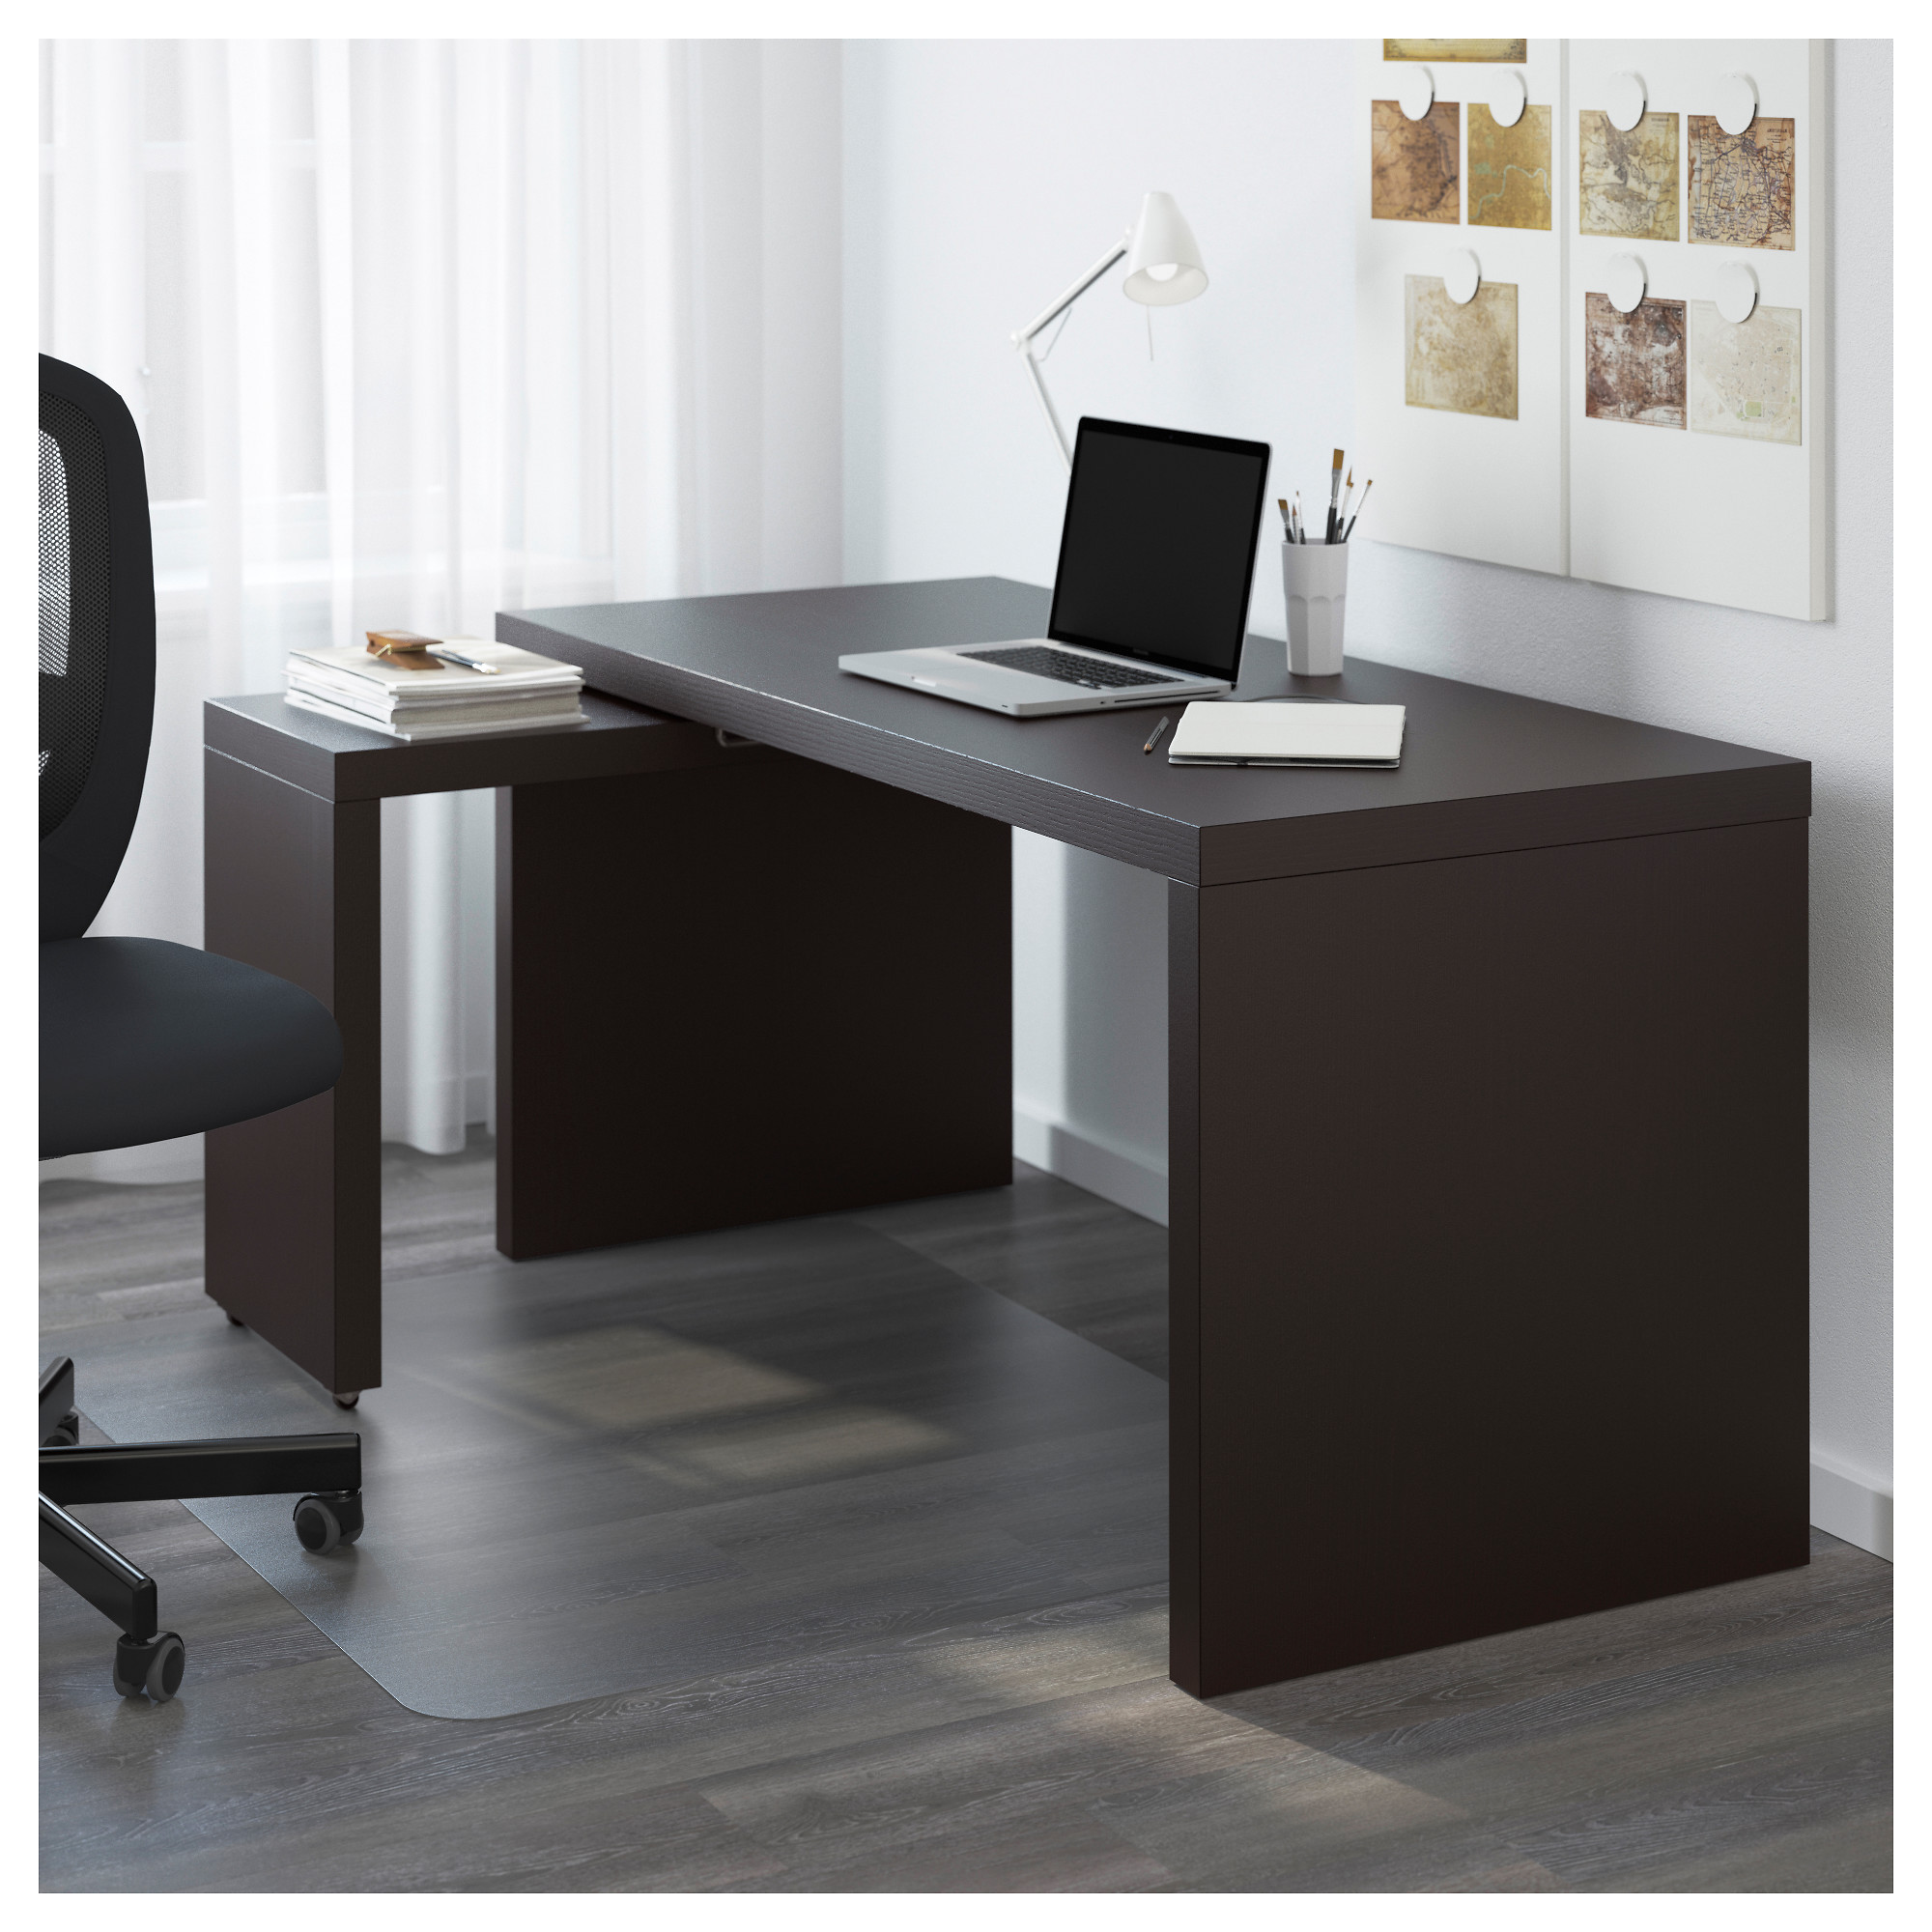 Ikea Galant Desk 11501 Instructions Bedford Corner Desk Craigslist Desk Ideas